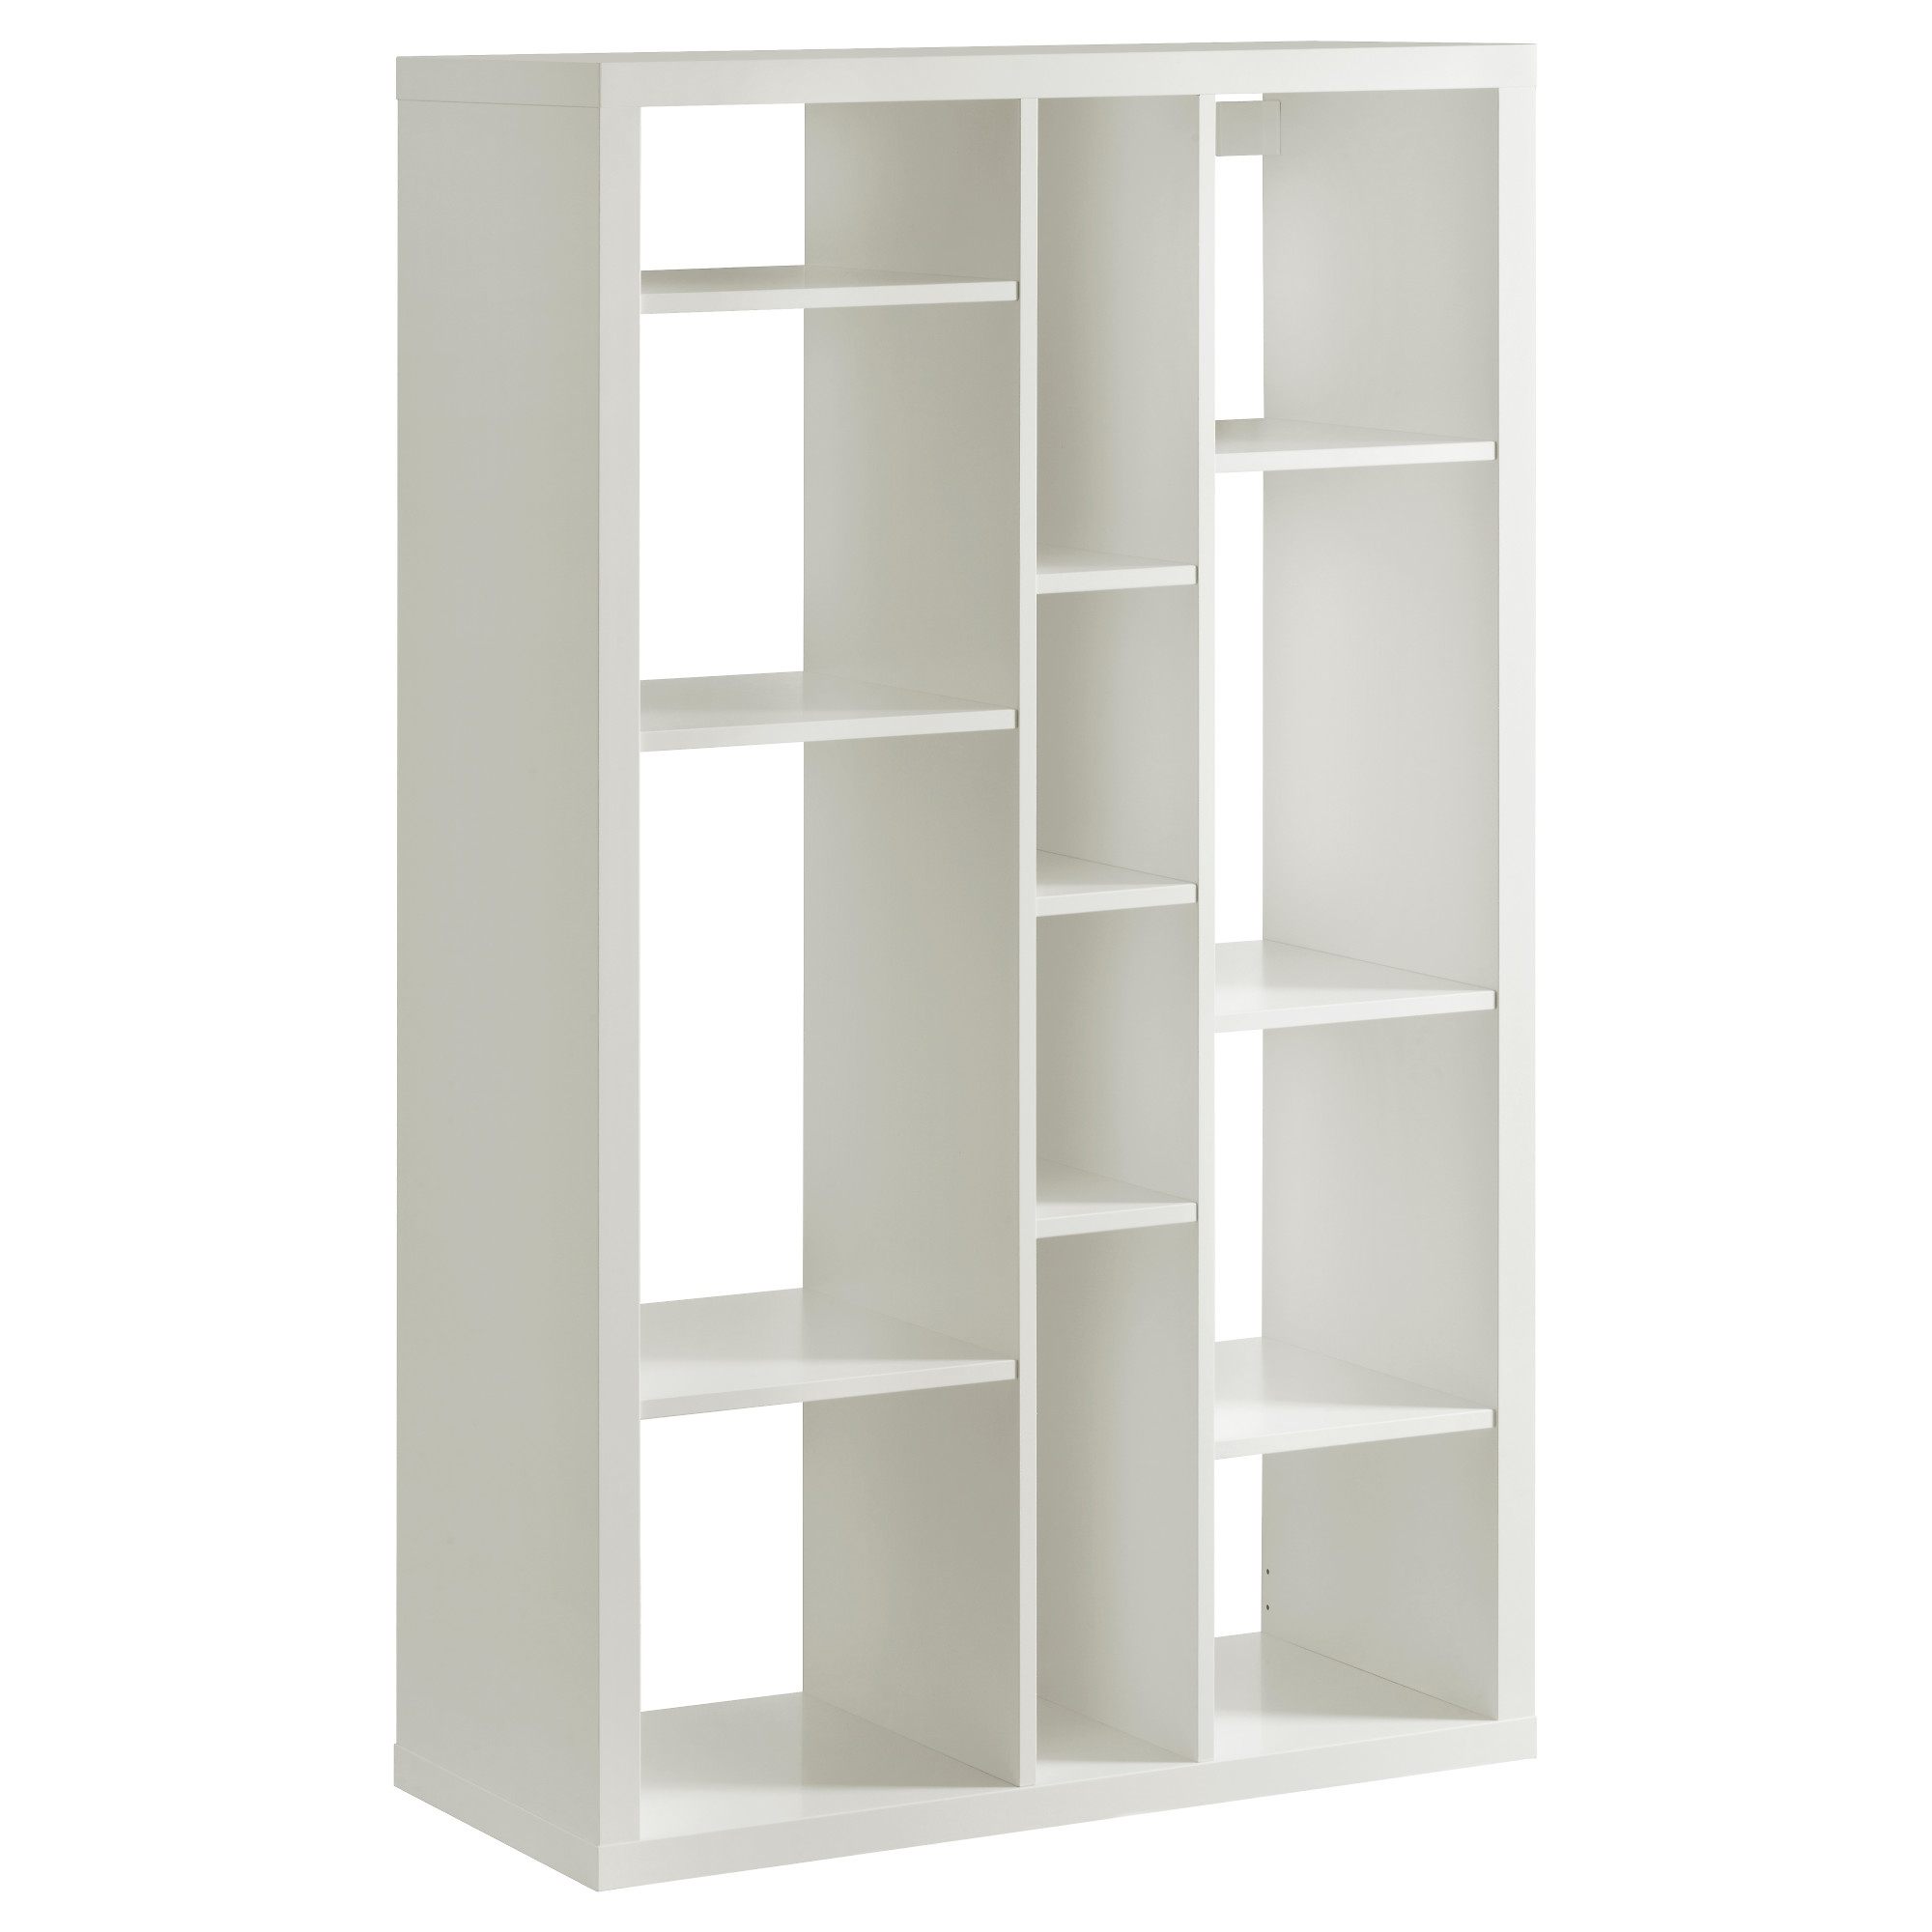 Trendy Kallax Shelf Unit – White – Ikea Regarding Ikea Kallax Bookcases (View 3 of 15)